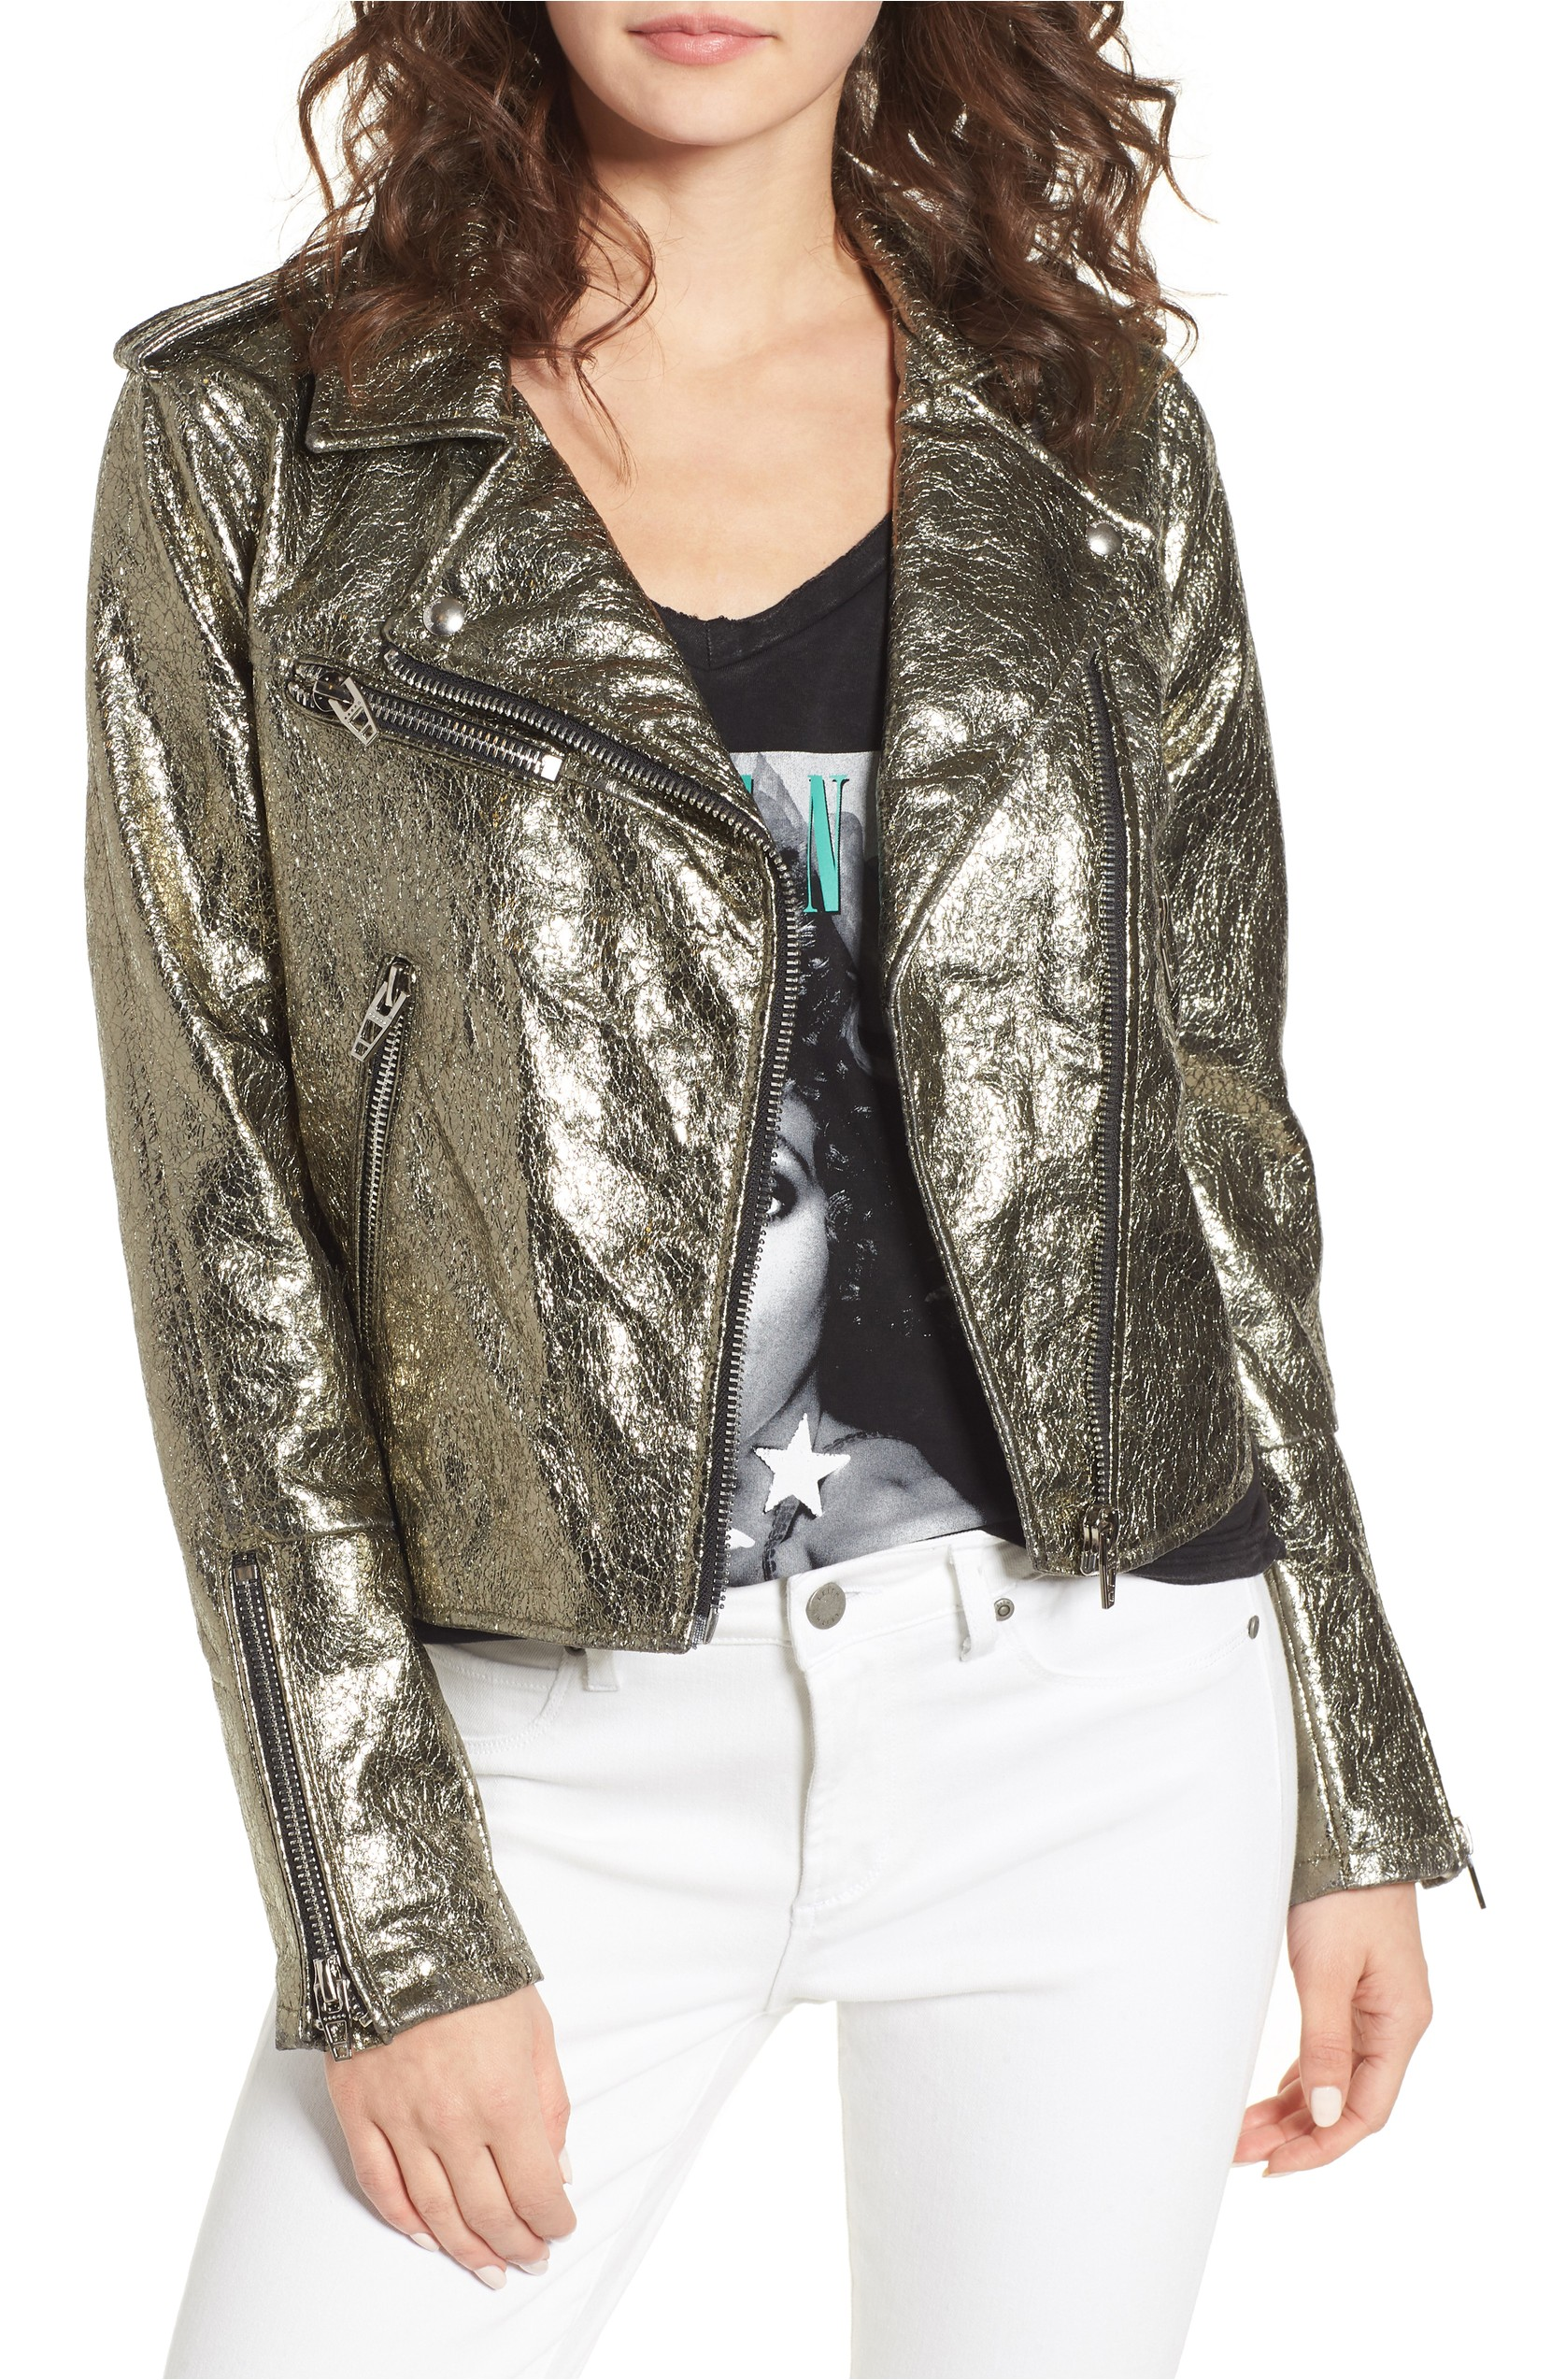 Metallic Faux Leather Moto Jacket was originally $128.00 and is now: $76.80. Rugged zip details boost the edgy, moto-inspired vibe of this metallic faux leather jacket designed to add a dose of cool to any look.<p>(Image: Nordstrom)</p>